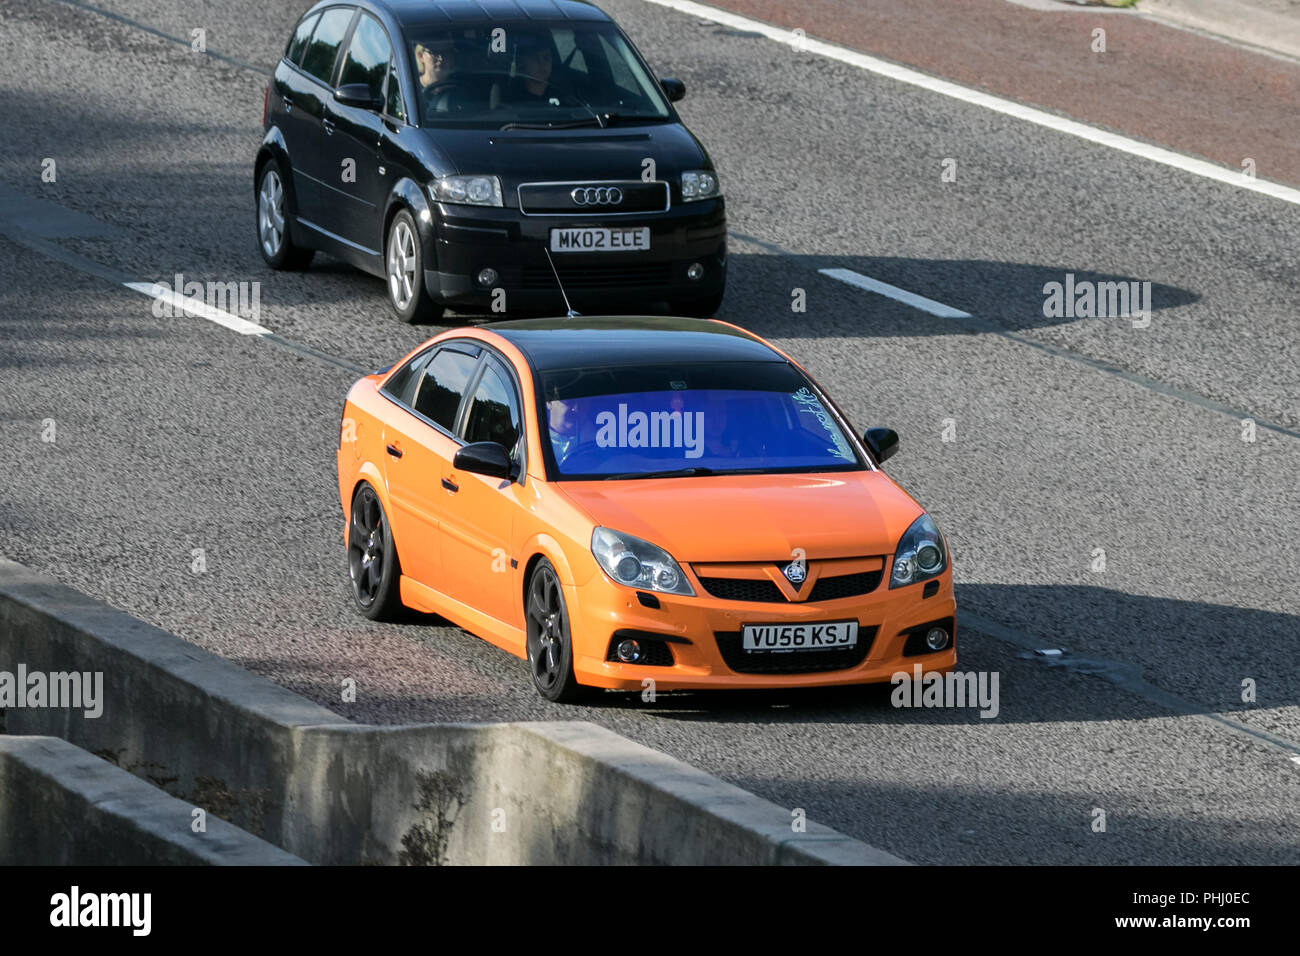 0range Vauxhall Vectra SRI Xpnav CDTI 150  specialist, collectable future classic cars on the M6 at Lancaster, UK - Stock Image